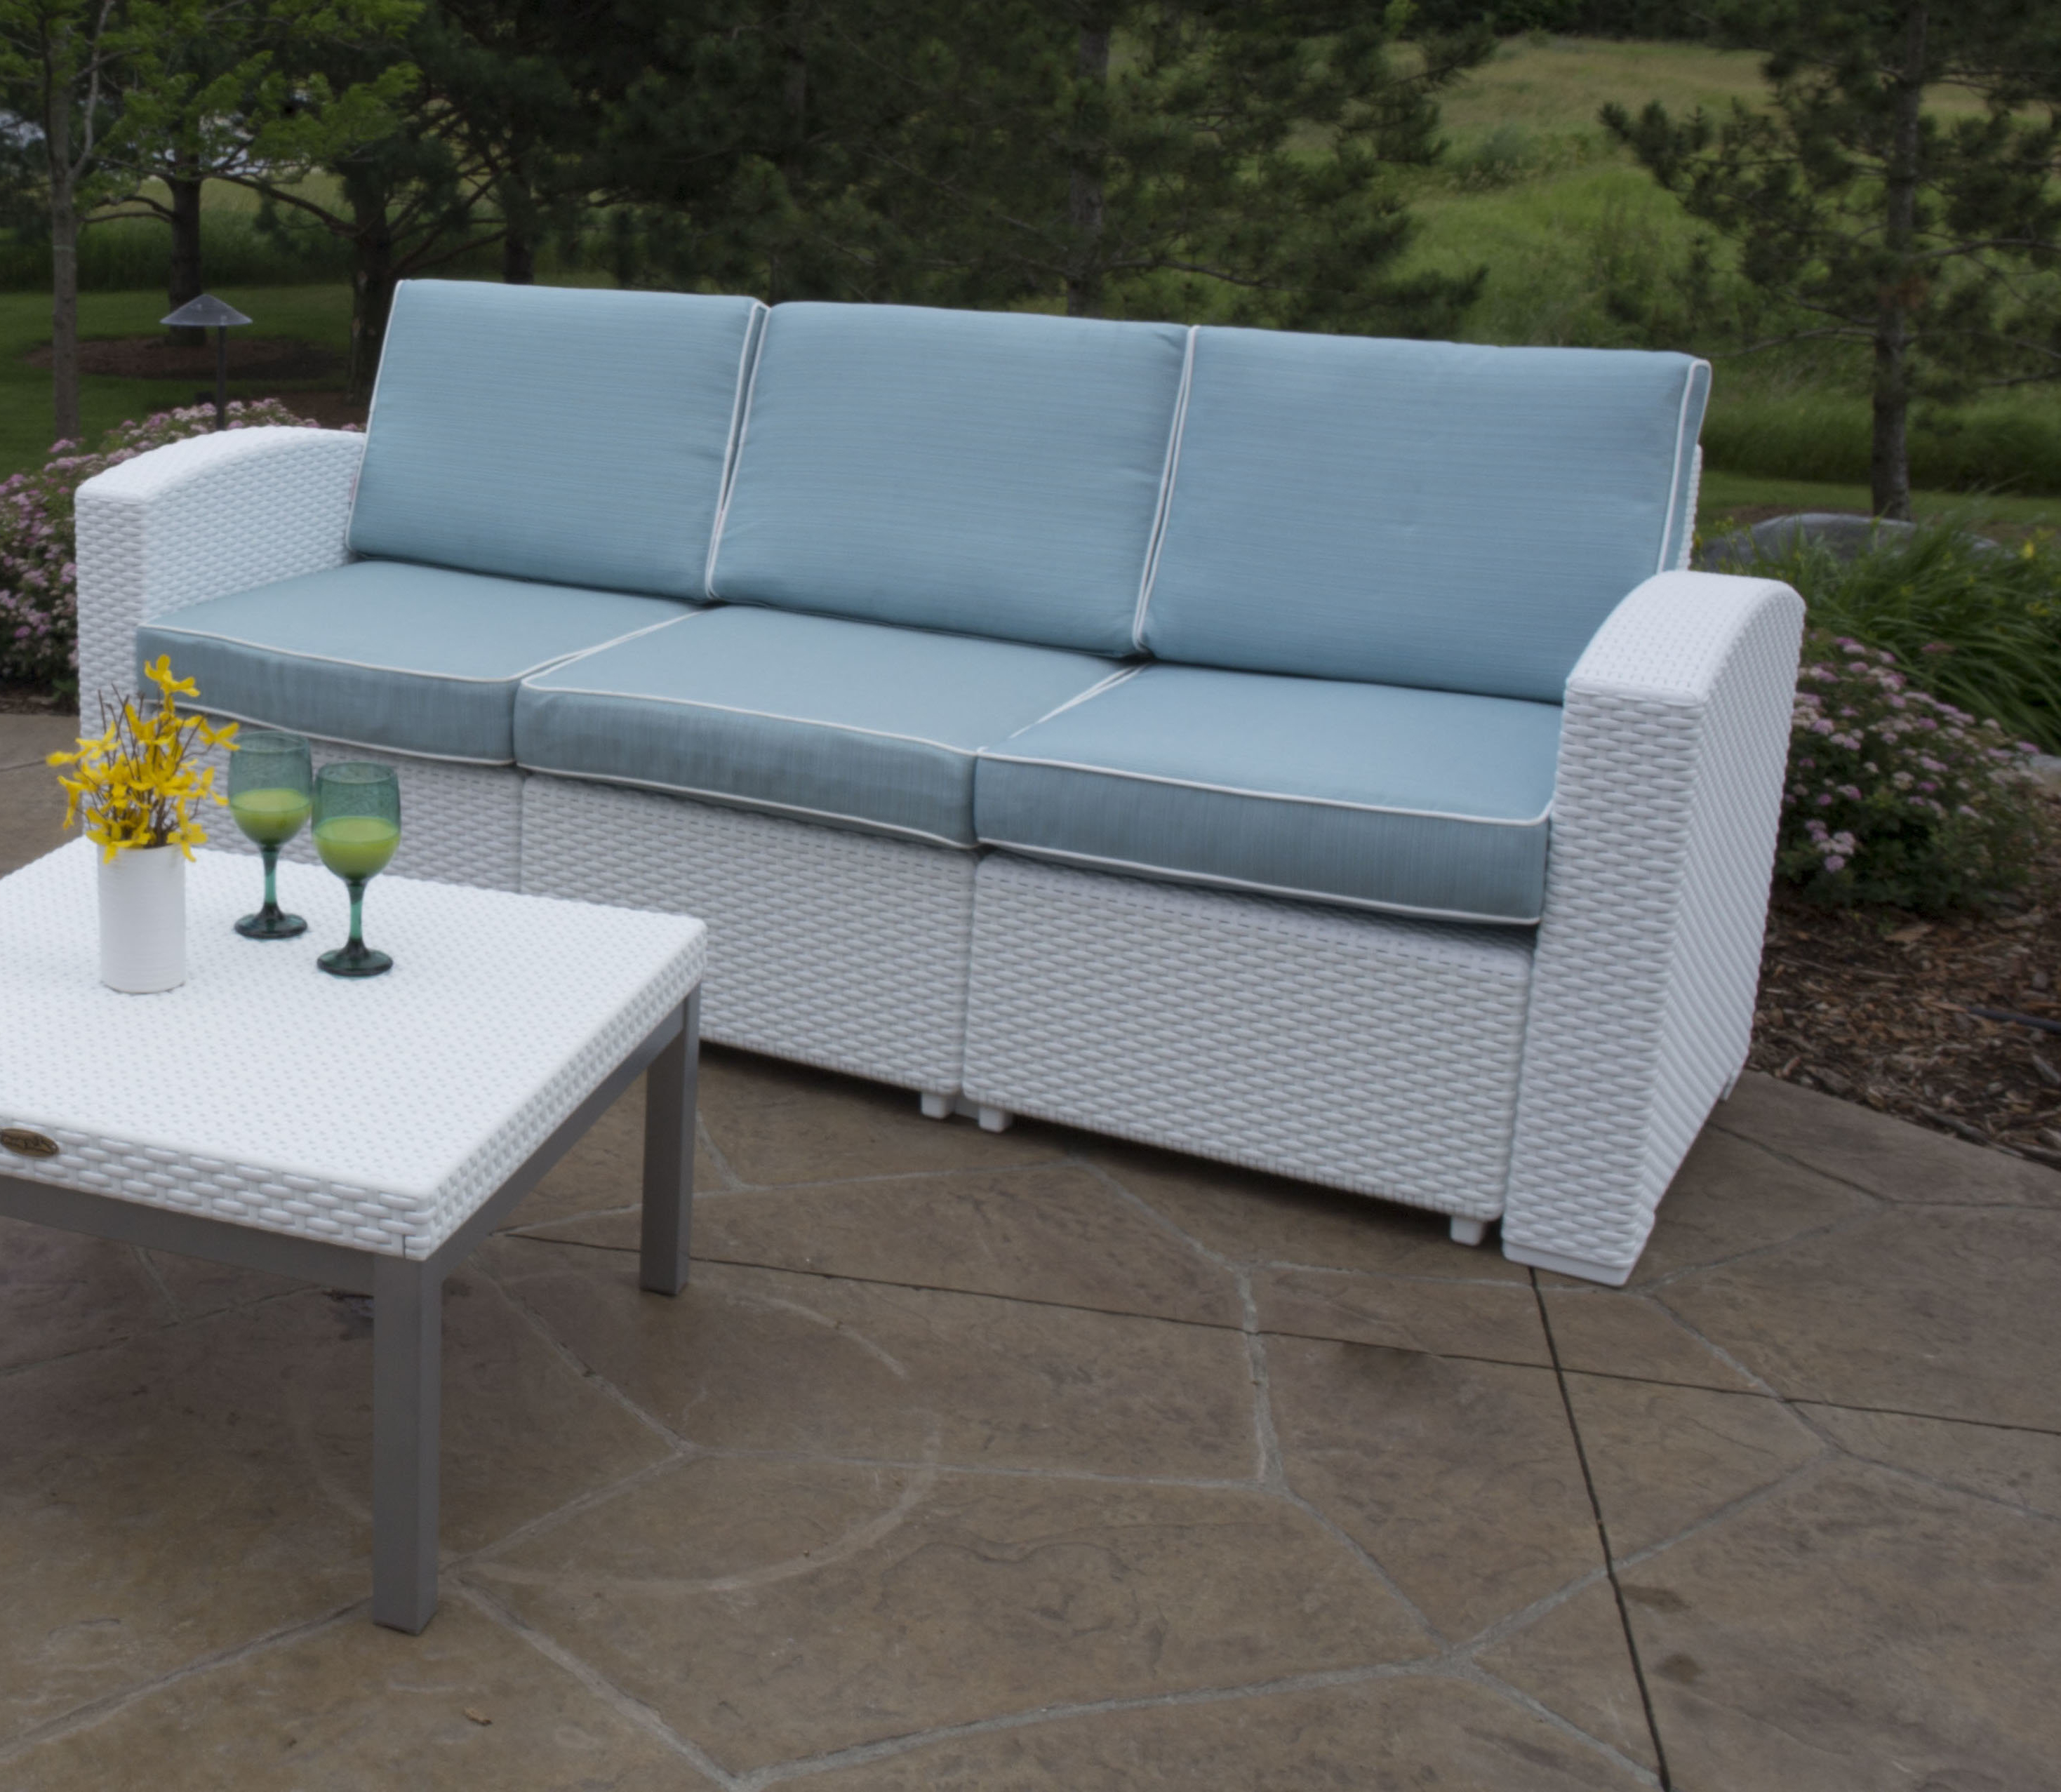 Loggins Patio Sofa With Cushions With Regard To Latest Stapleton Wicker Resin Patio Sofas With Cushions (View 7 of 20)